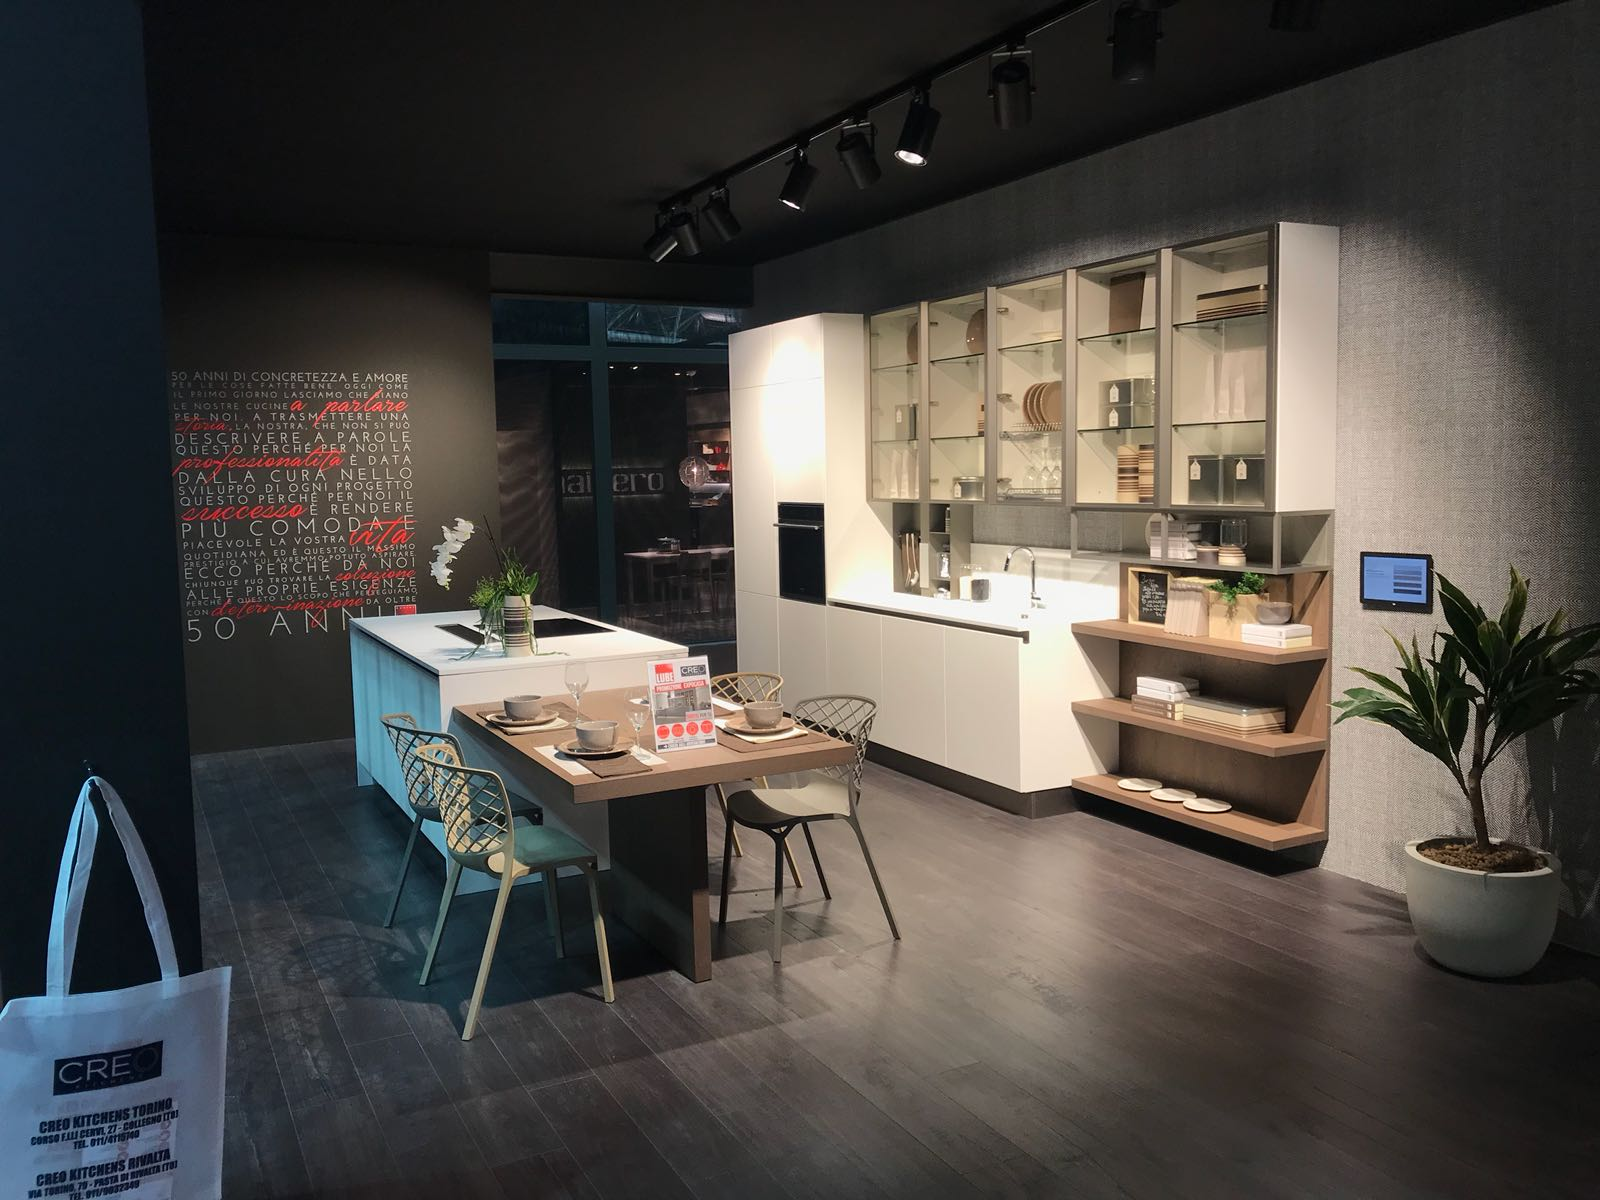 Gruppo LUBE at the 55th Expocasa Torino trade fair - Kitchens Lube